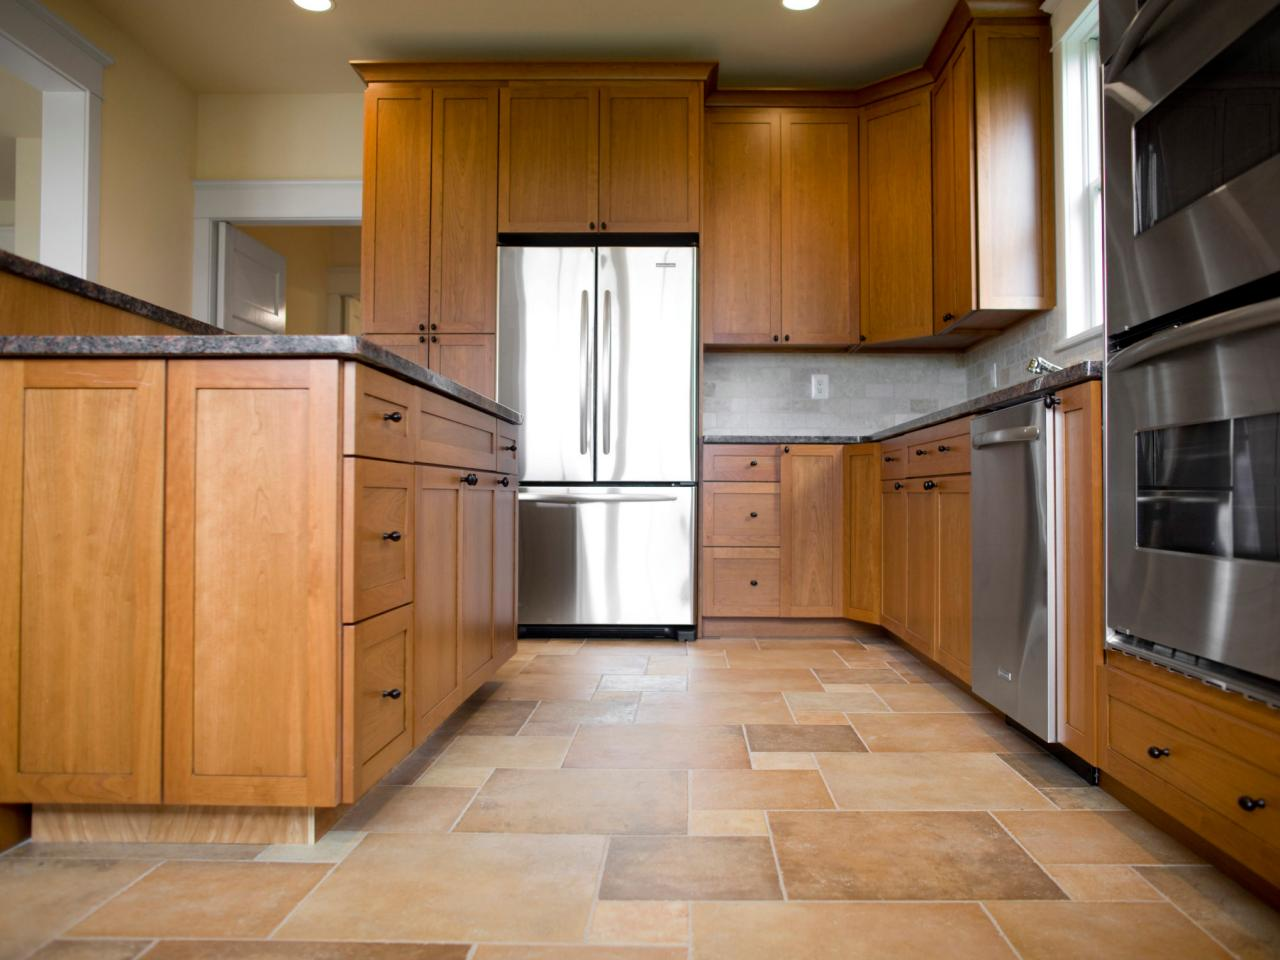 Kitchen flooring options choose the best flooring for your kitchen RXYHFJF